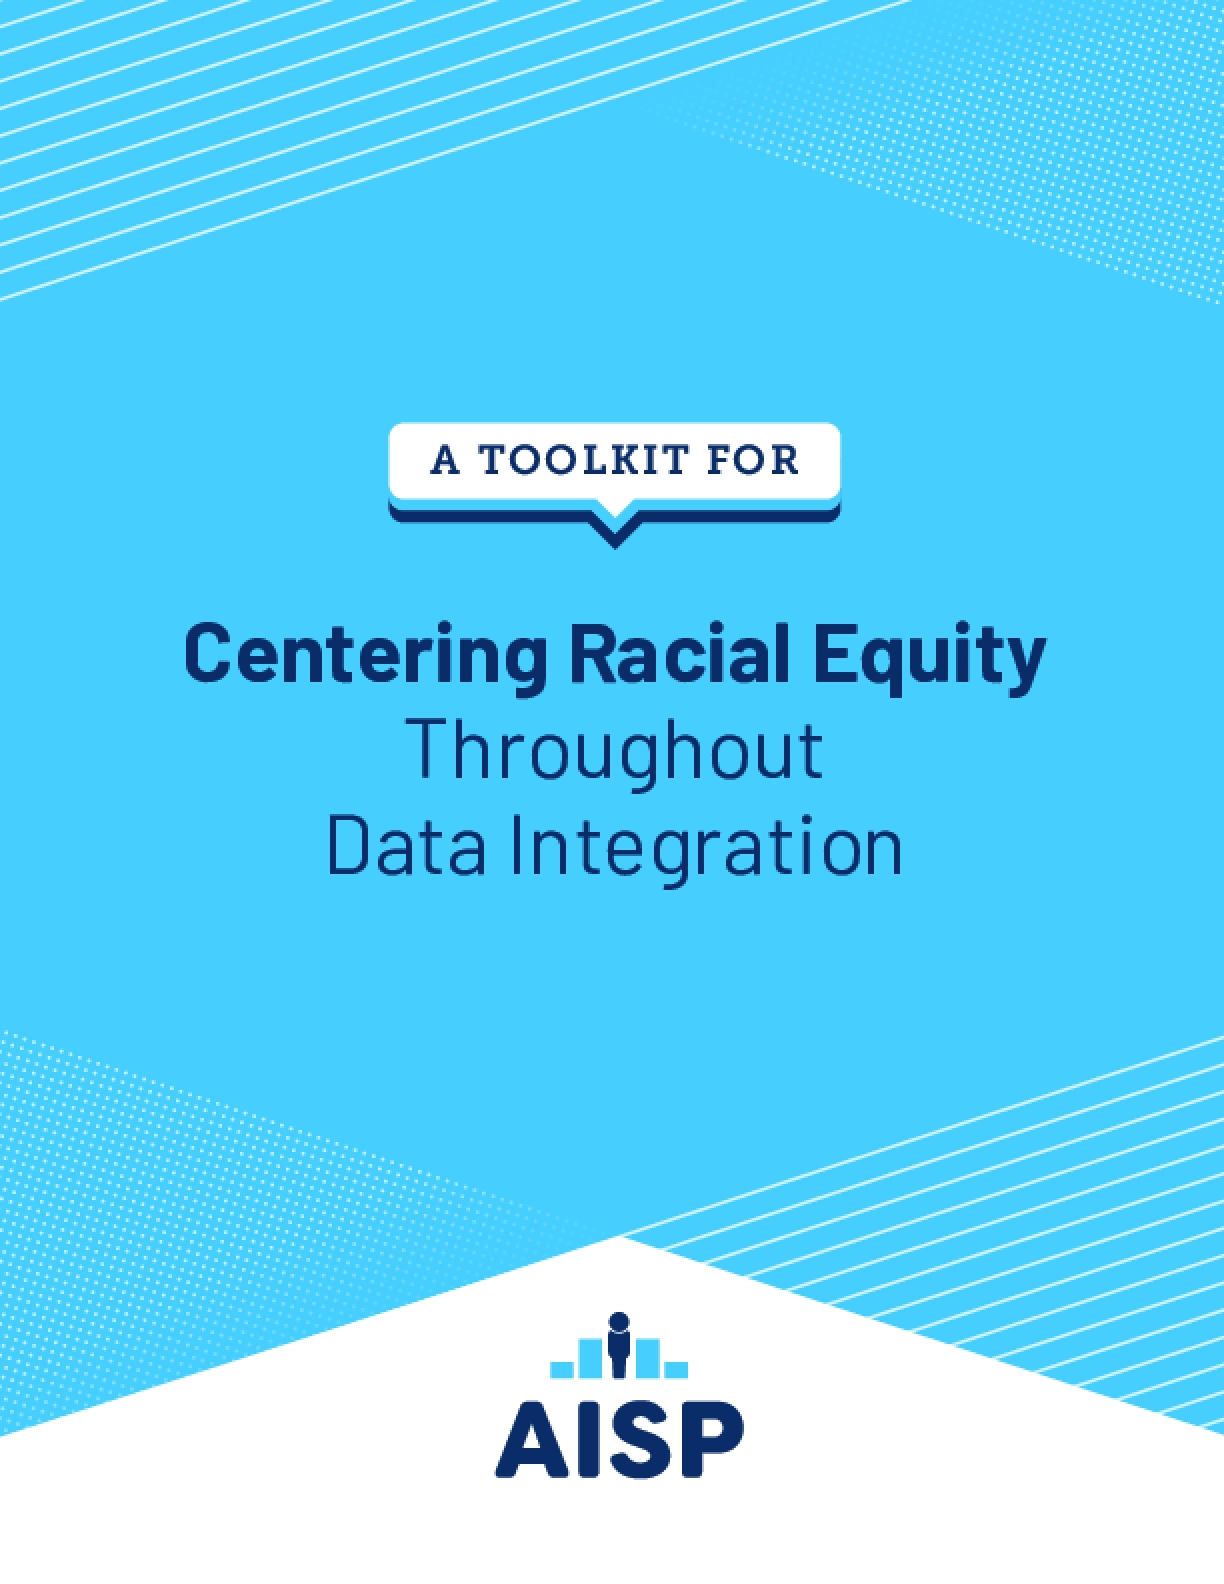 A Toolkit for Centering Racial Equity Throughout Data Integration